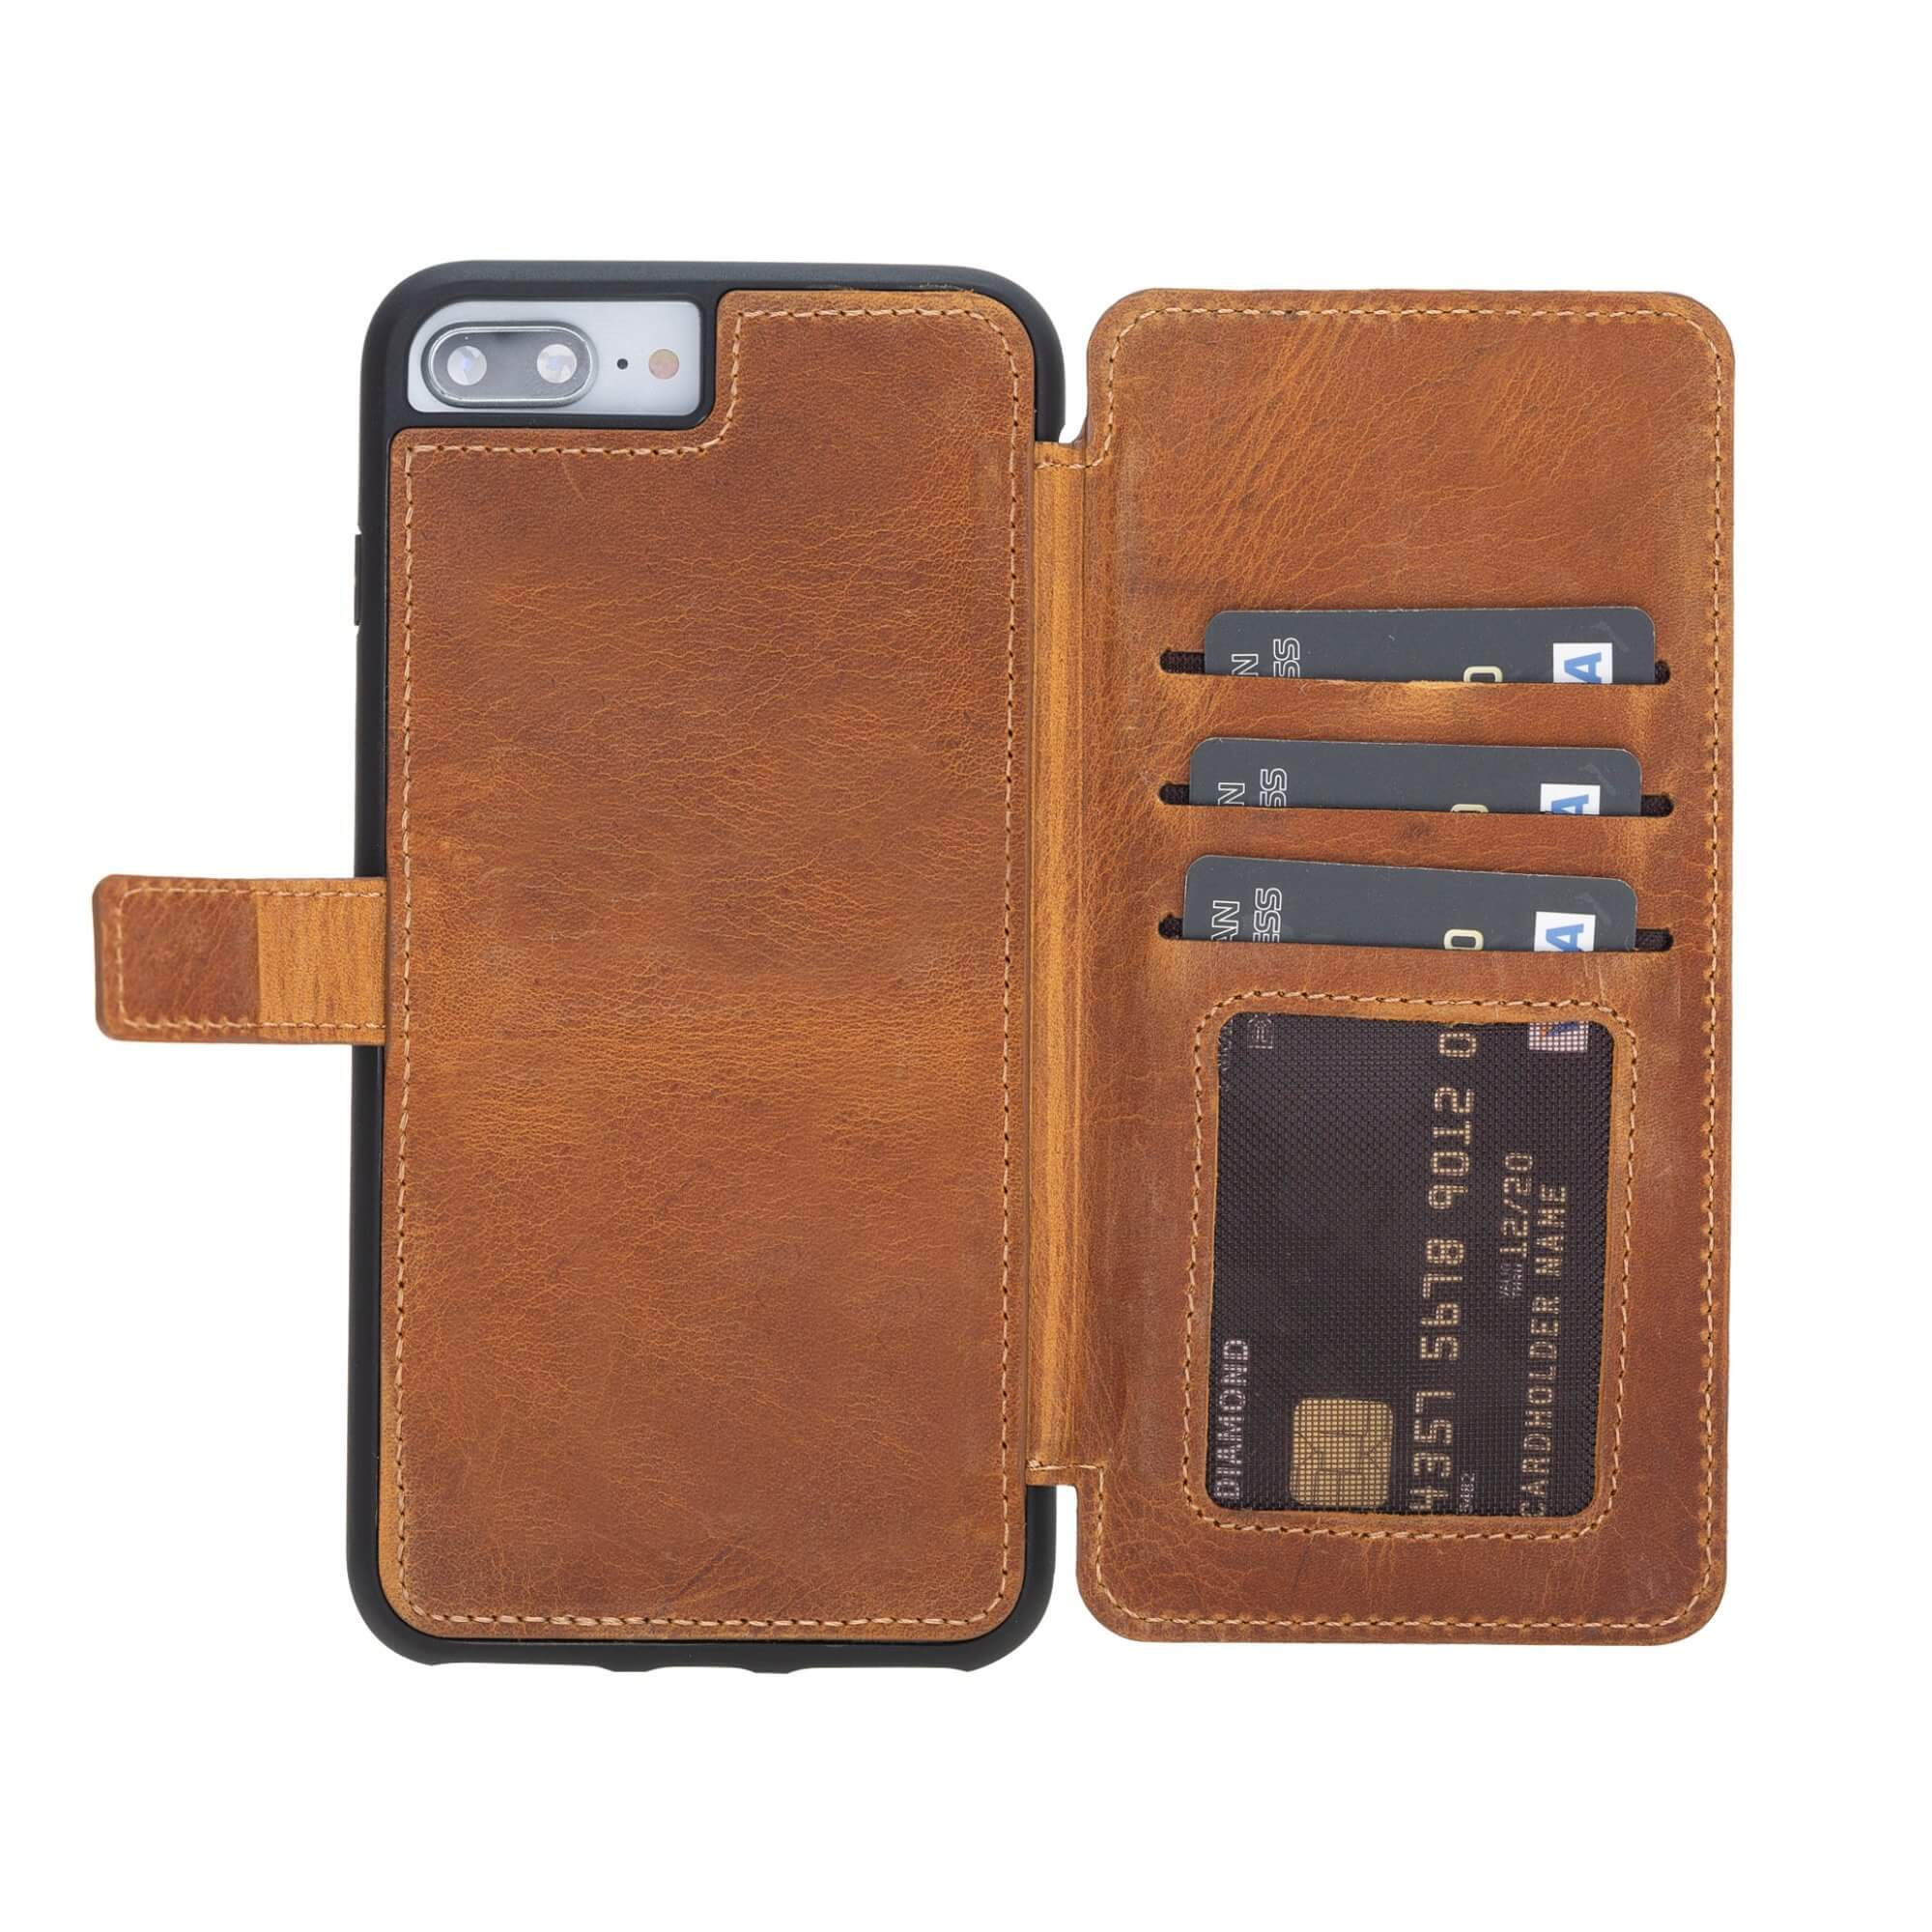 Verona RFID Blocking Leather Slim Wallet Case for iPhone 7 Plus